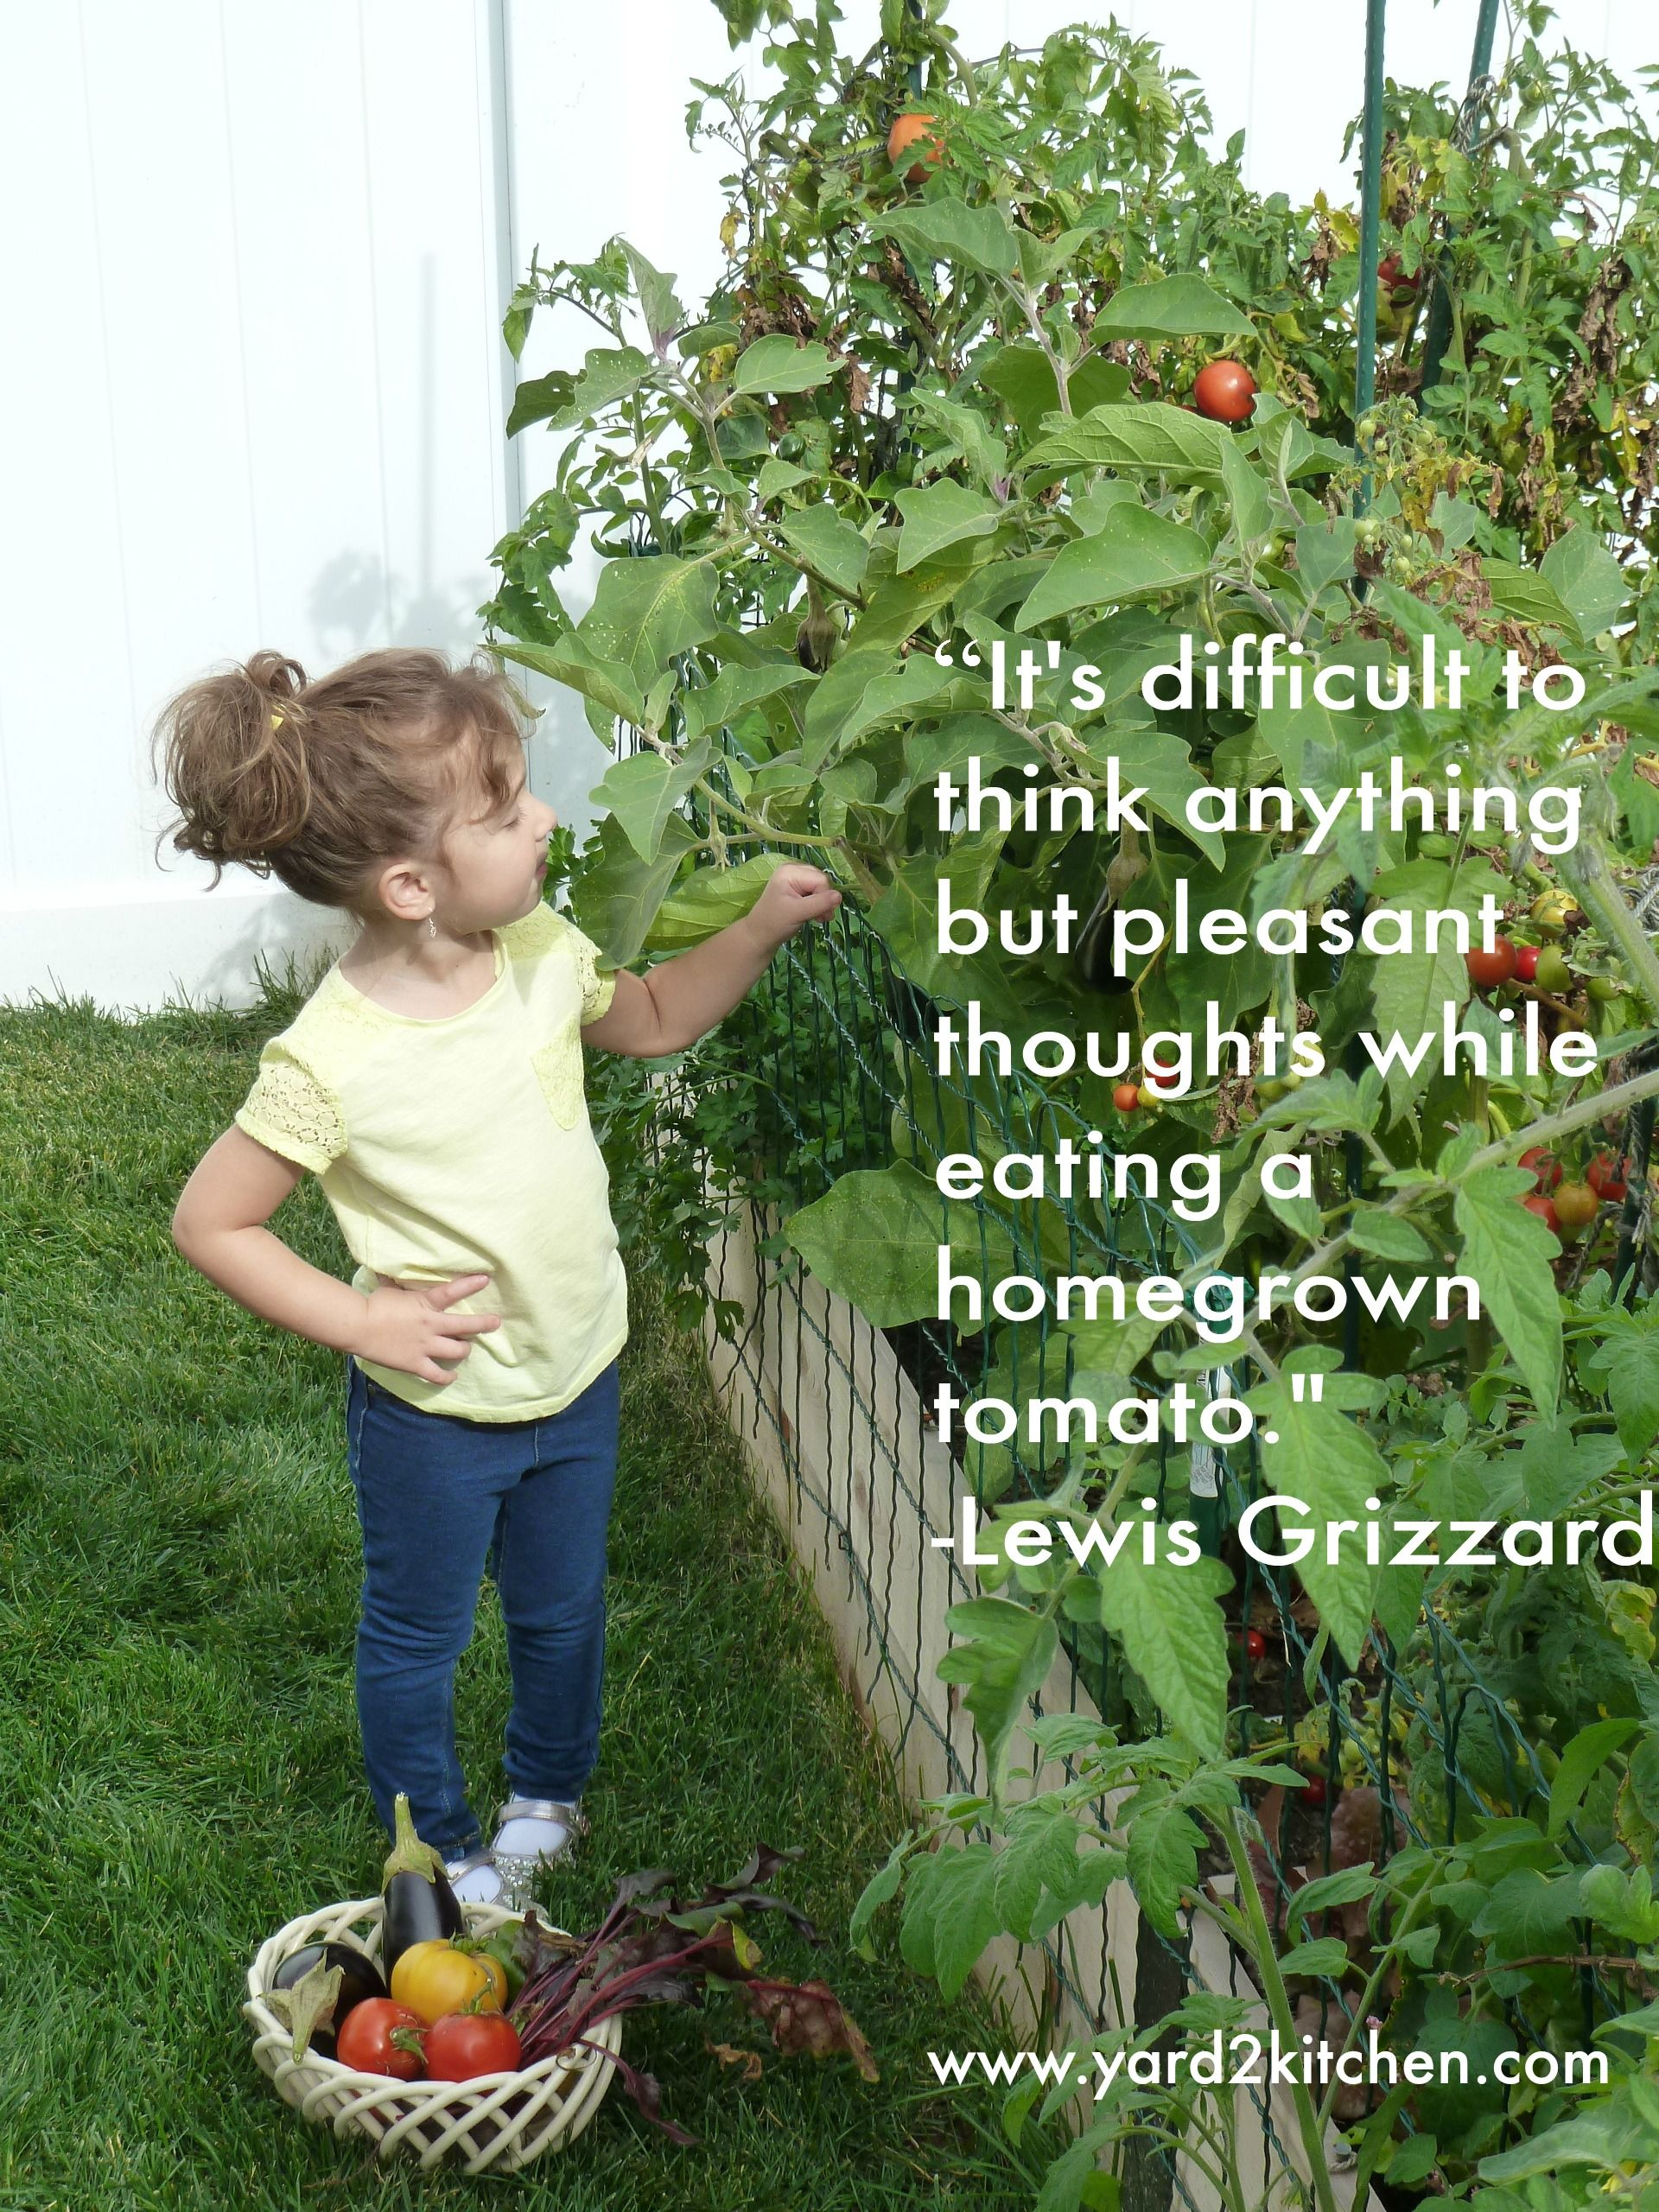 our backyard organic gardens are fun for the whole family